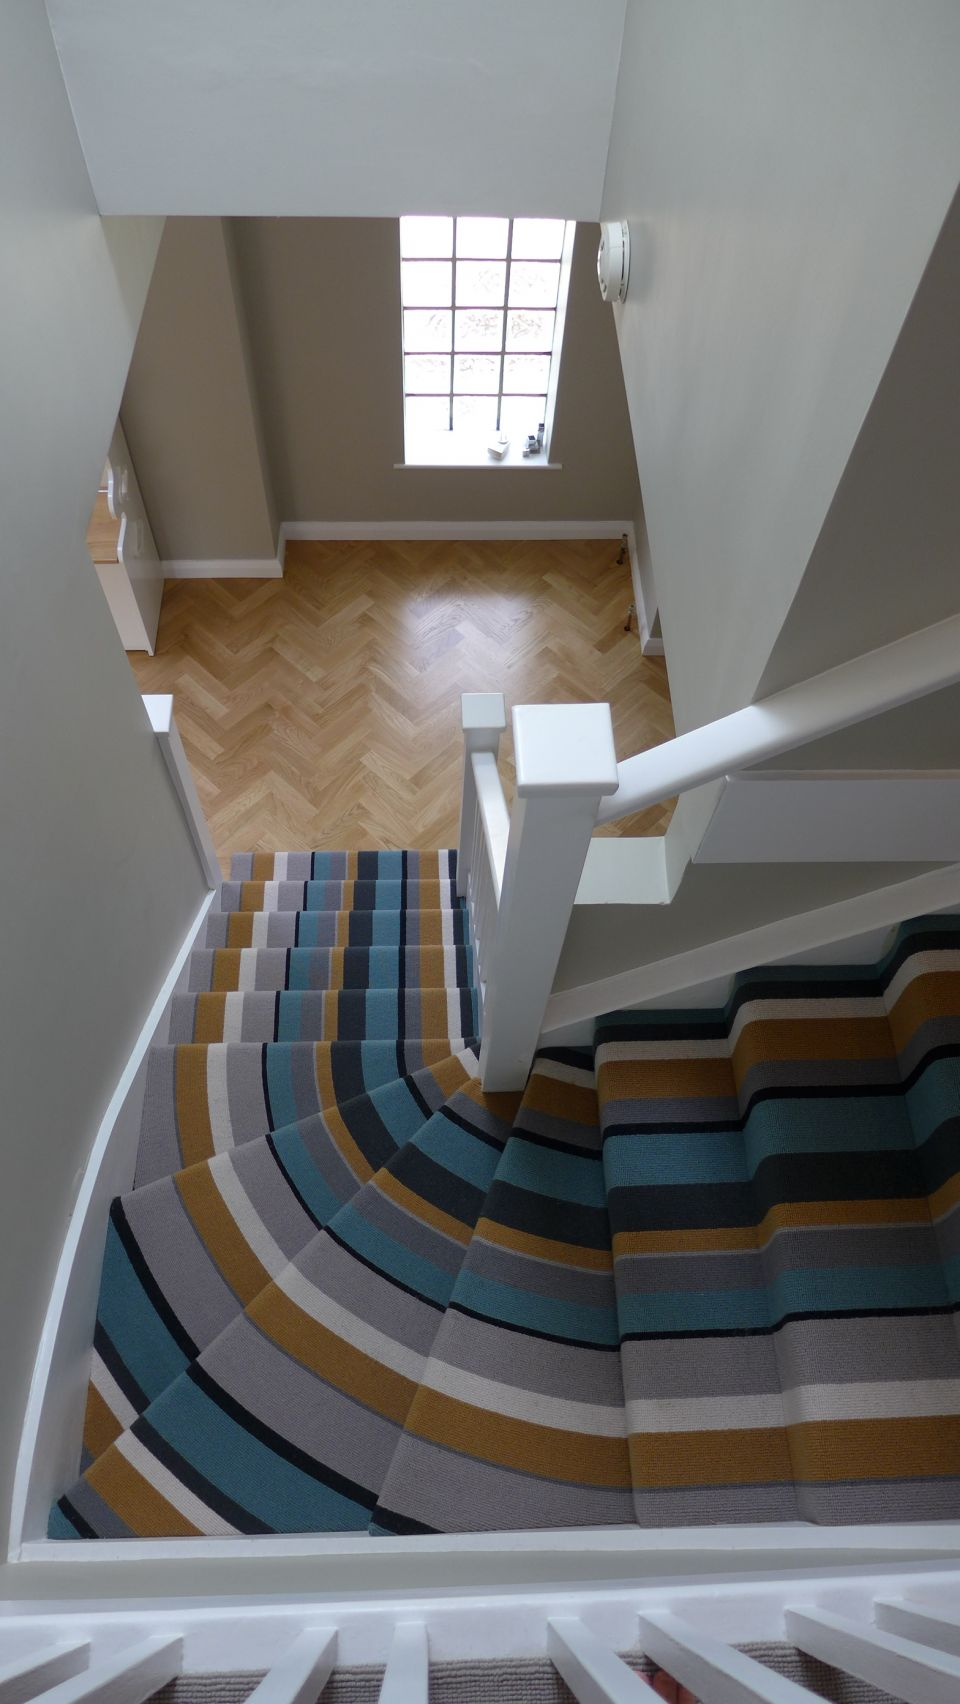 striped stair carpet to parquet hall floor